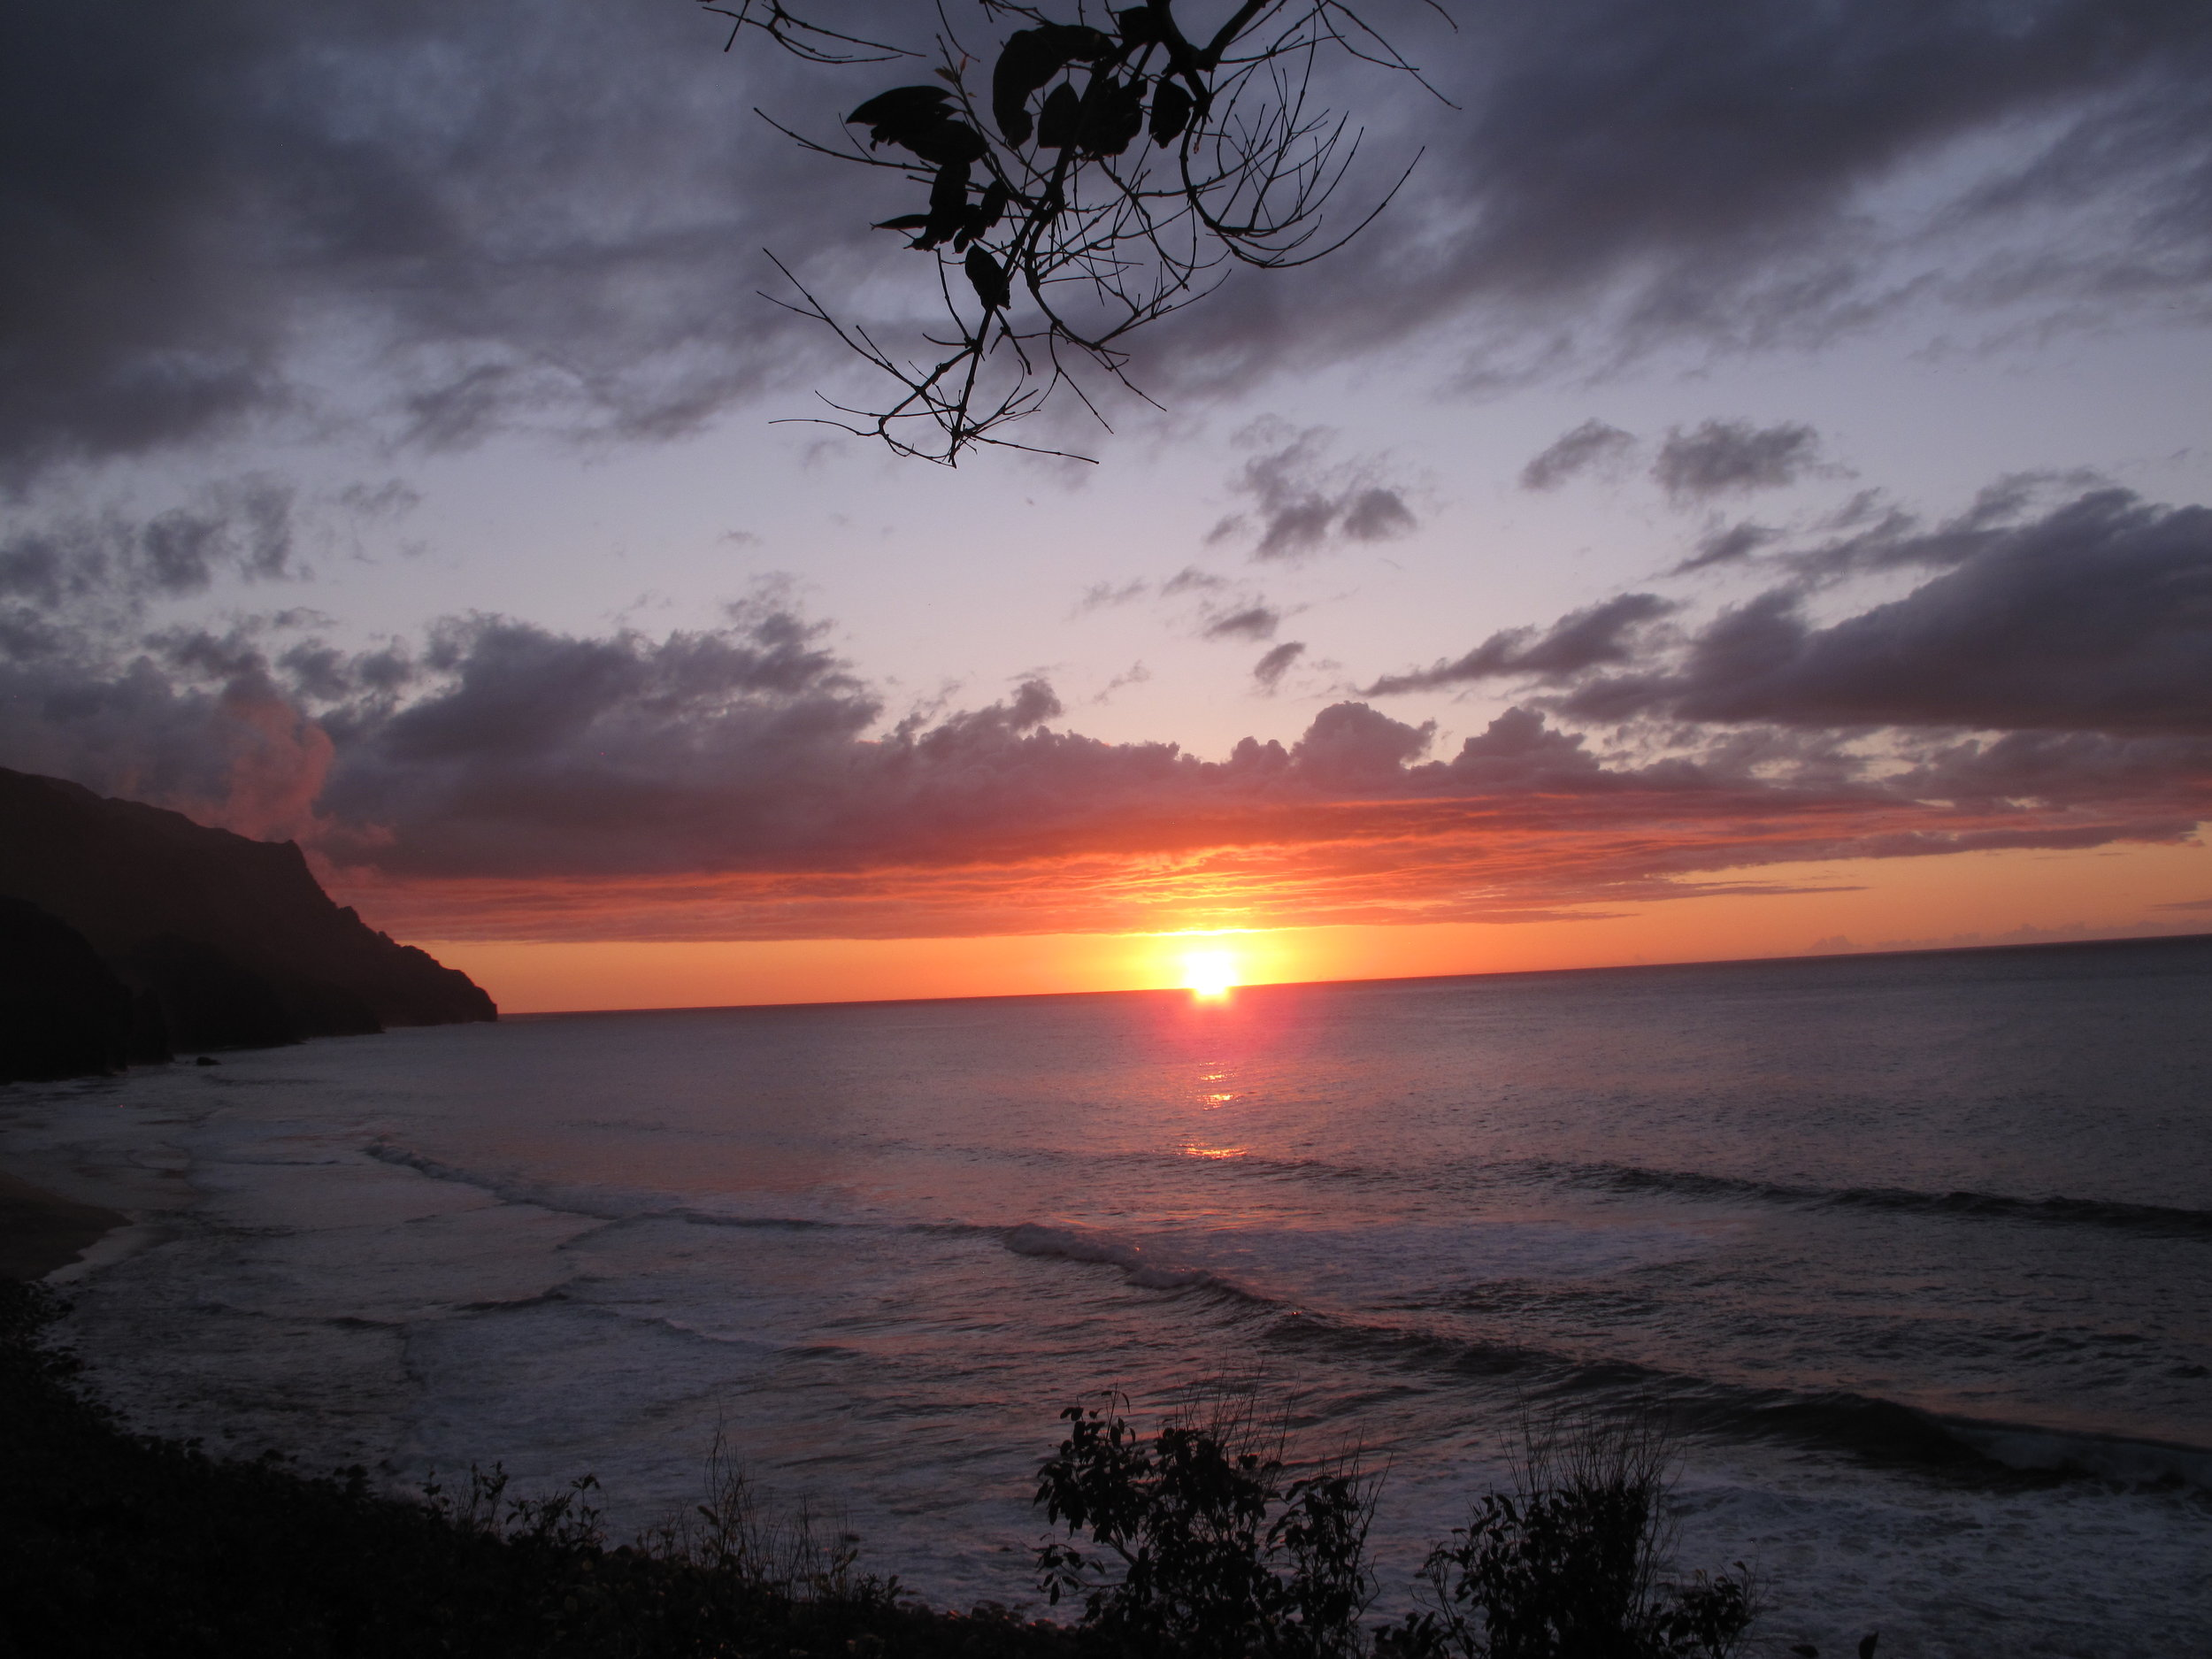 sunset on Kalalau, a 12 mile hike to brings you to the north shore of Kaua'i, where I studied at the Pacific Center for Awareness & Bodywork to finish my massage training.